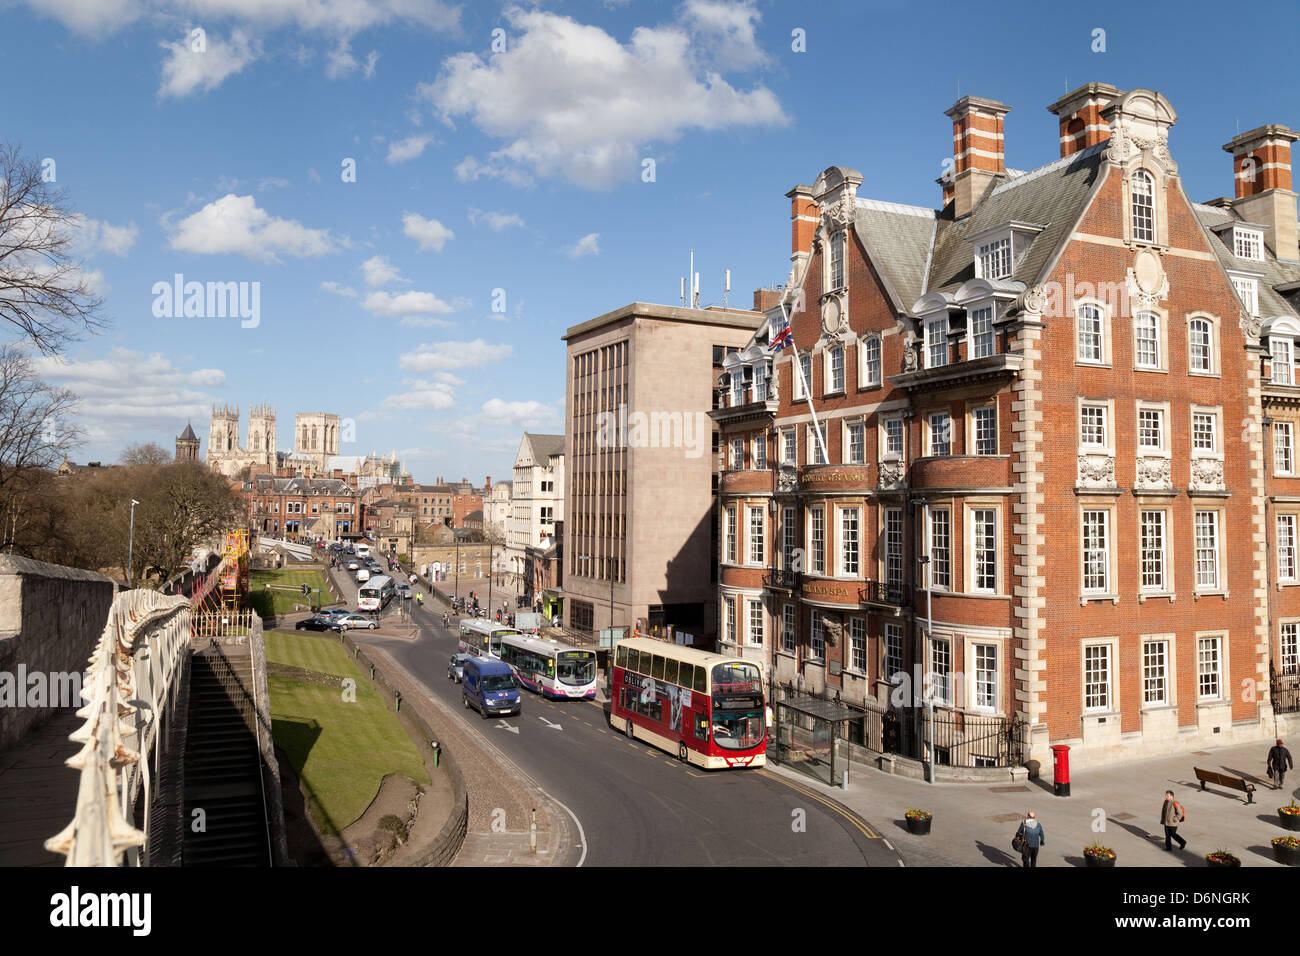 York city centre with The  Grand Hotel and the old city walls in the foreground, UK Stock Photo